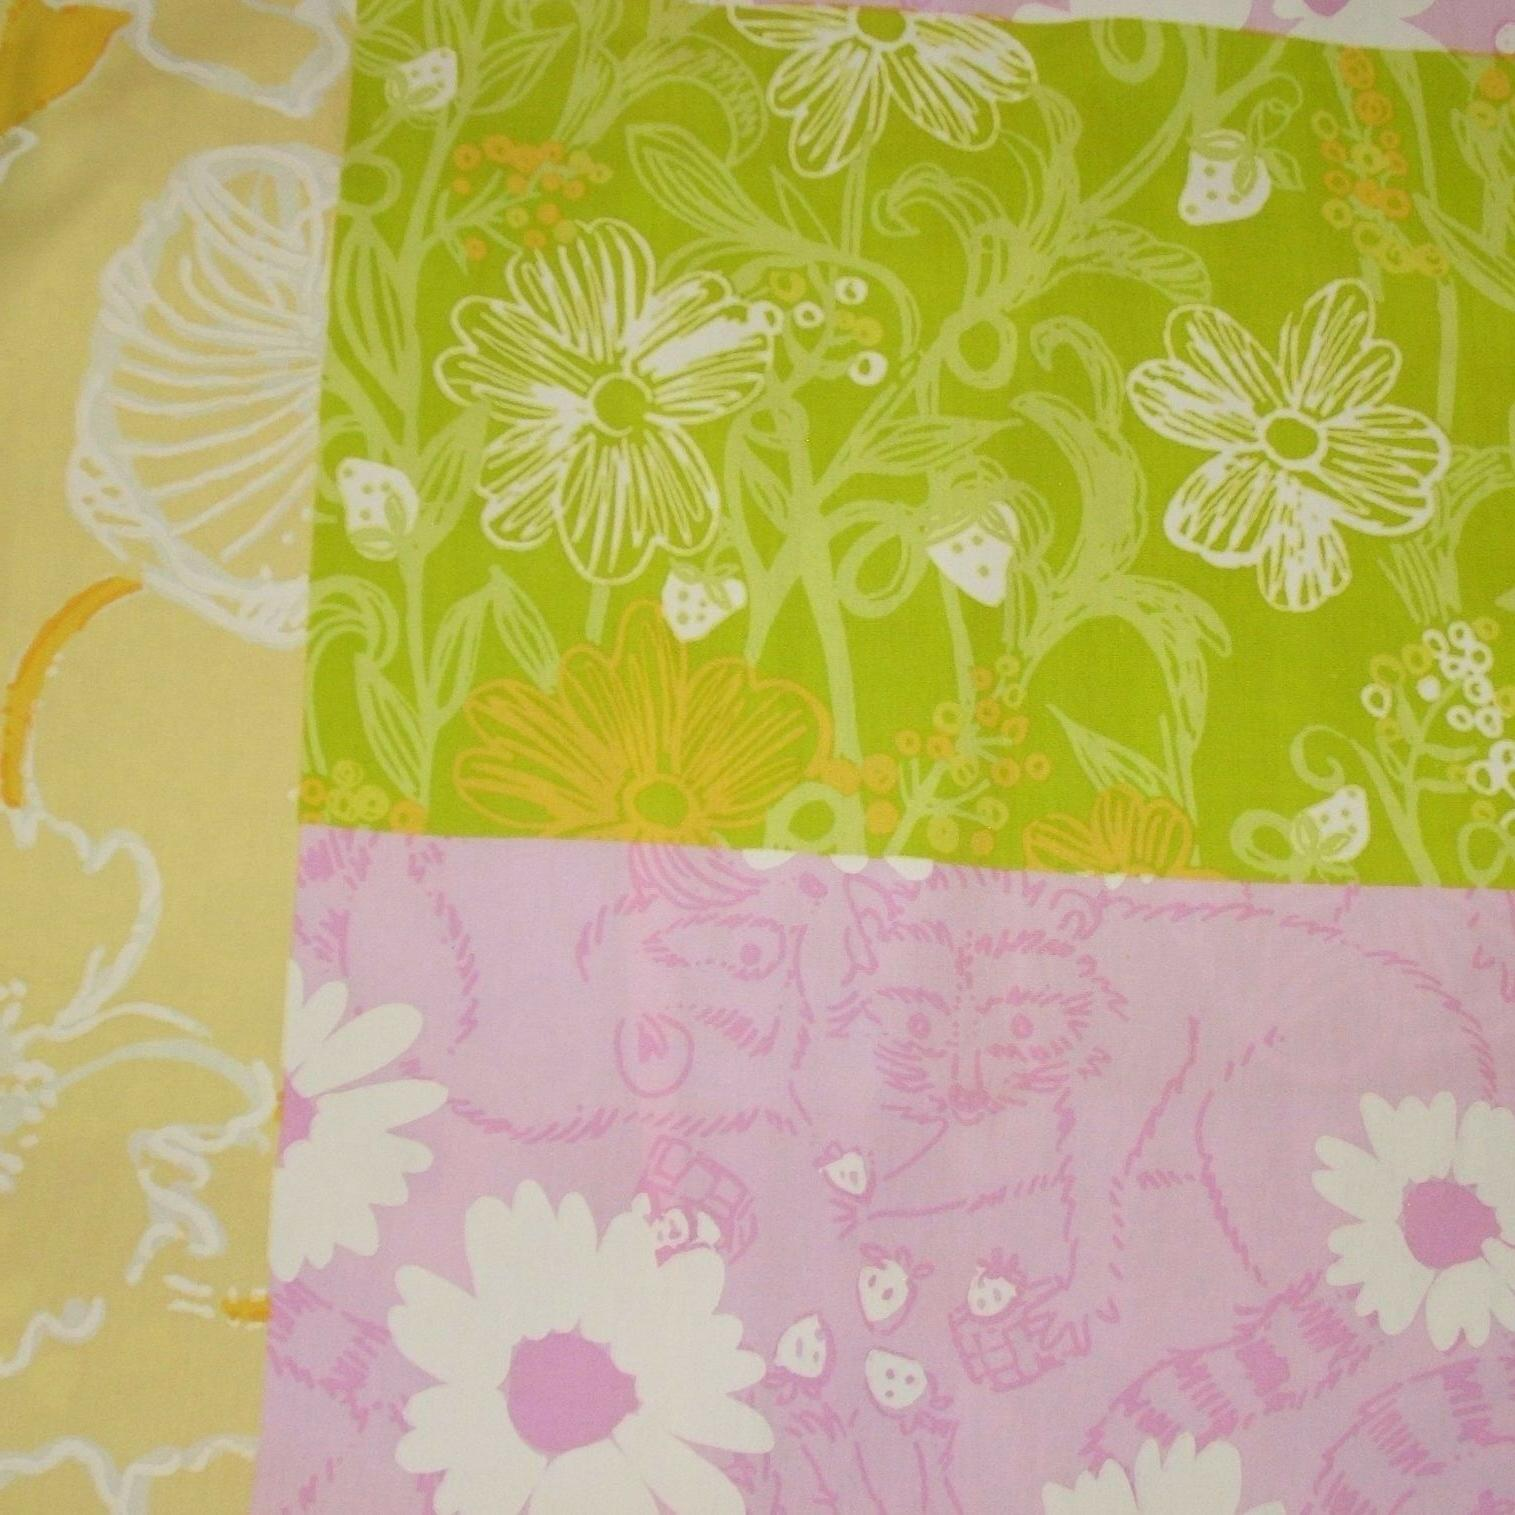 Lilly Pulitzer Floral Pillow Case Shift Dress Girls Size 10